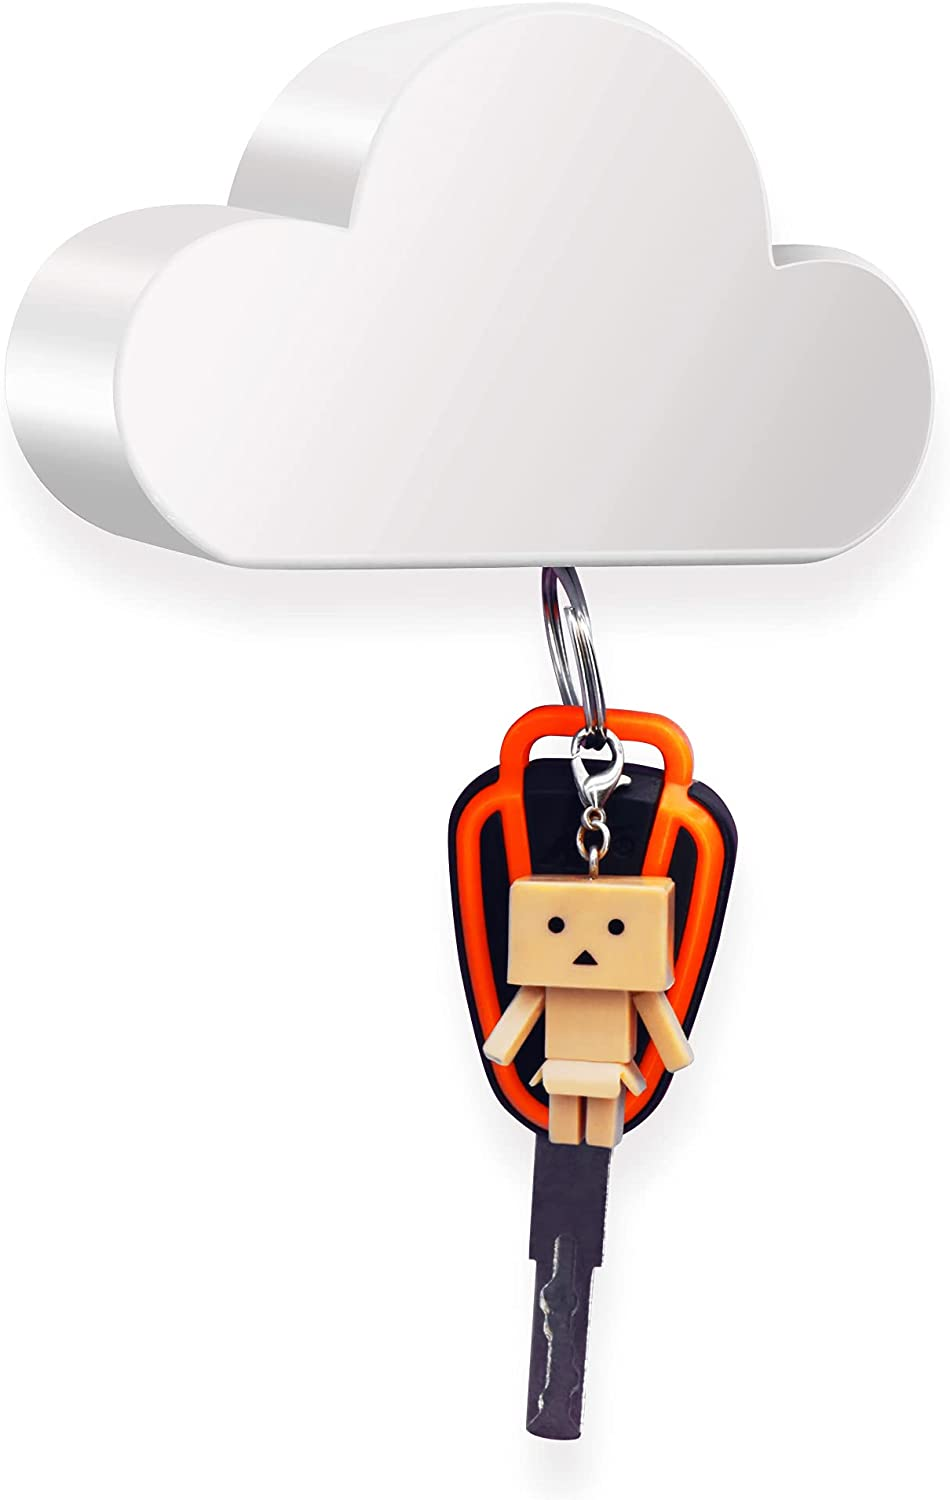 White Albuquerque Mall Cloud Magnetic Key Holder Super sale for Or Creative Wall and Unique